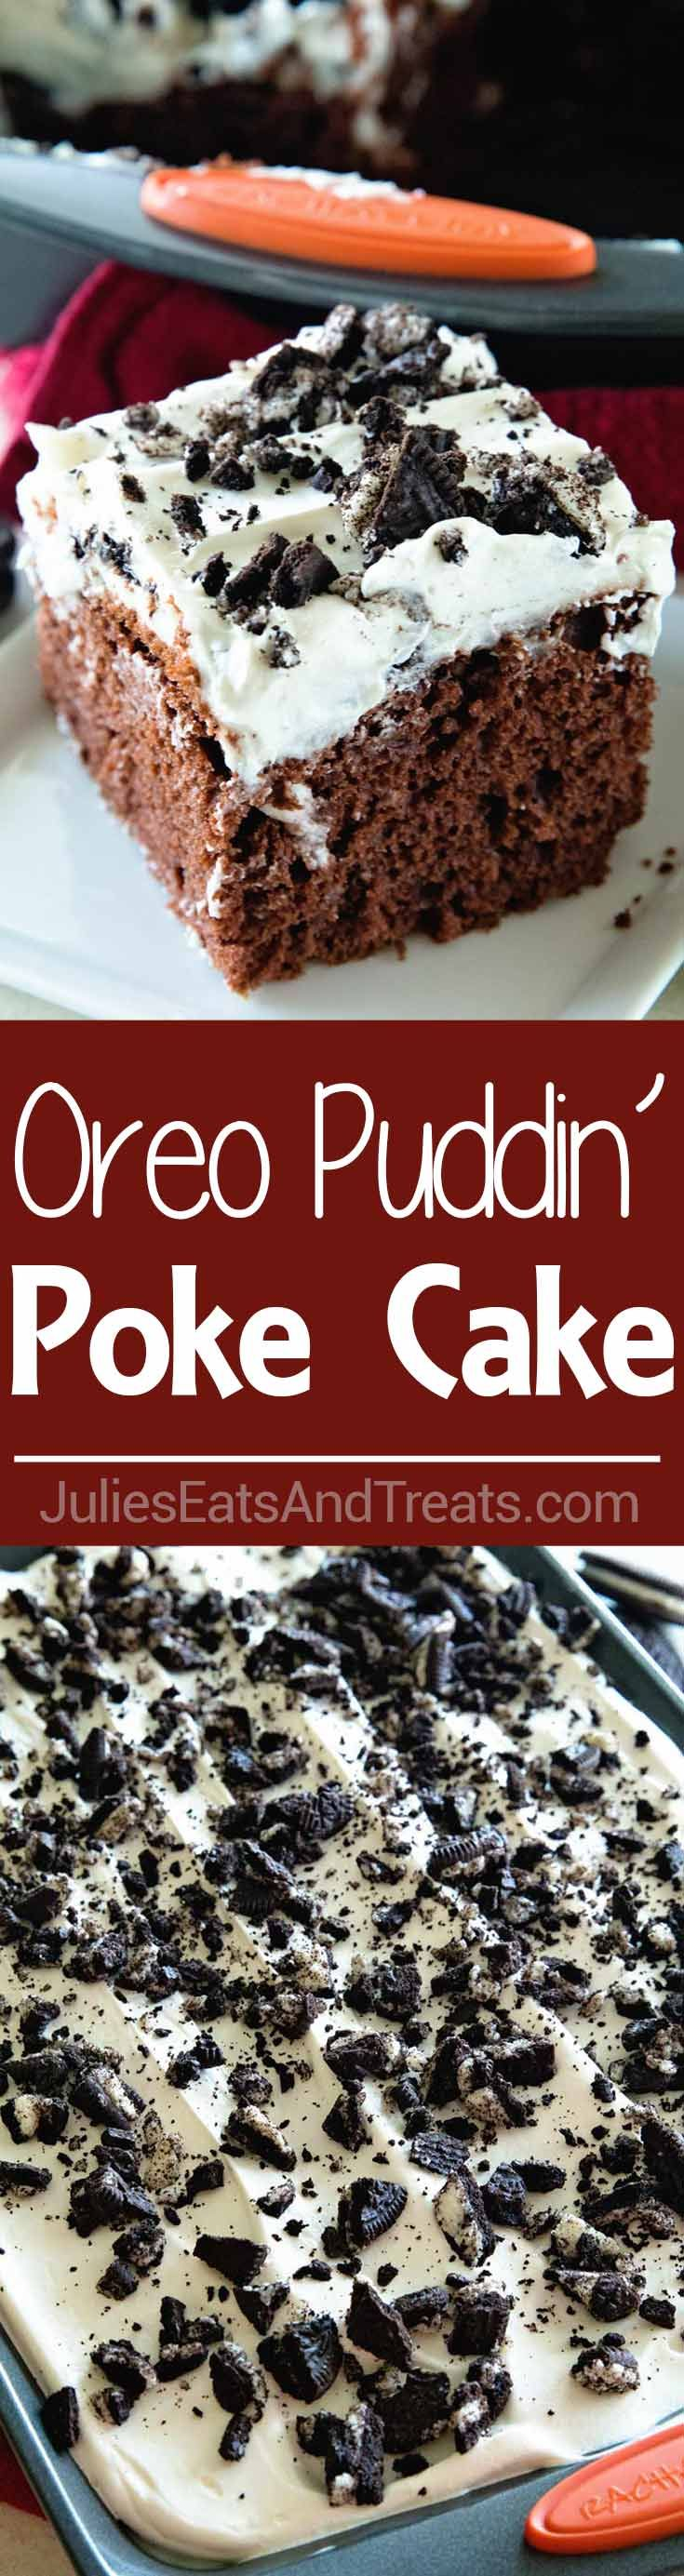 Oreo Puddin' Poke Cake ~ Chocolate Cake Topped with Oreo Pudding, Cool Whip and Crushed Oreos! Quick, Easy Poke Cake That Everyone Will Love! via @julieseats